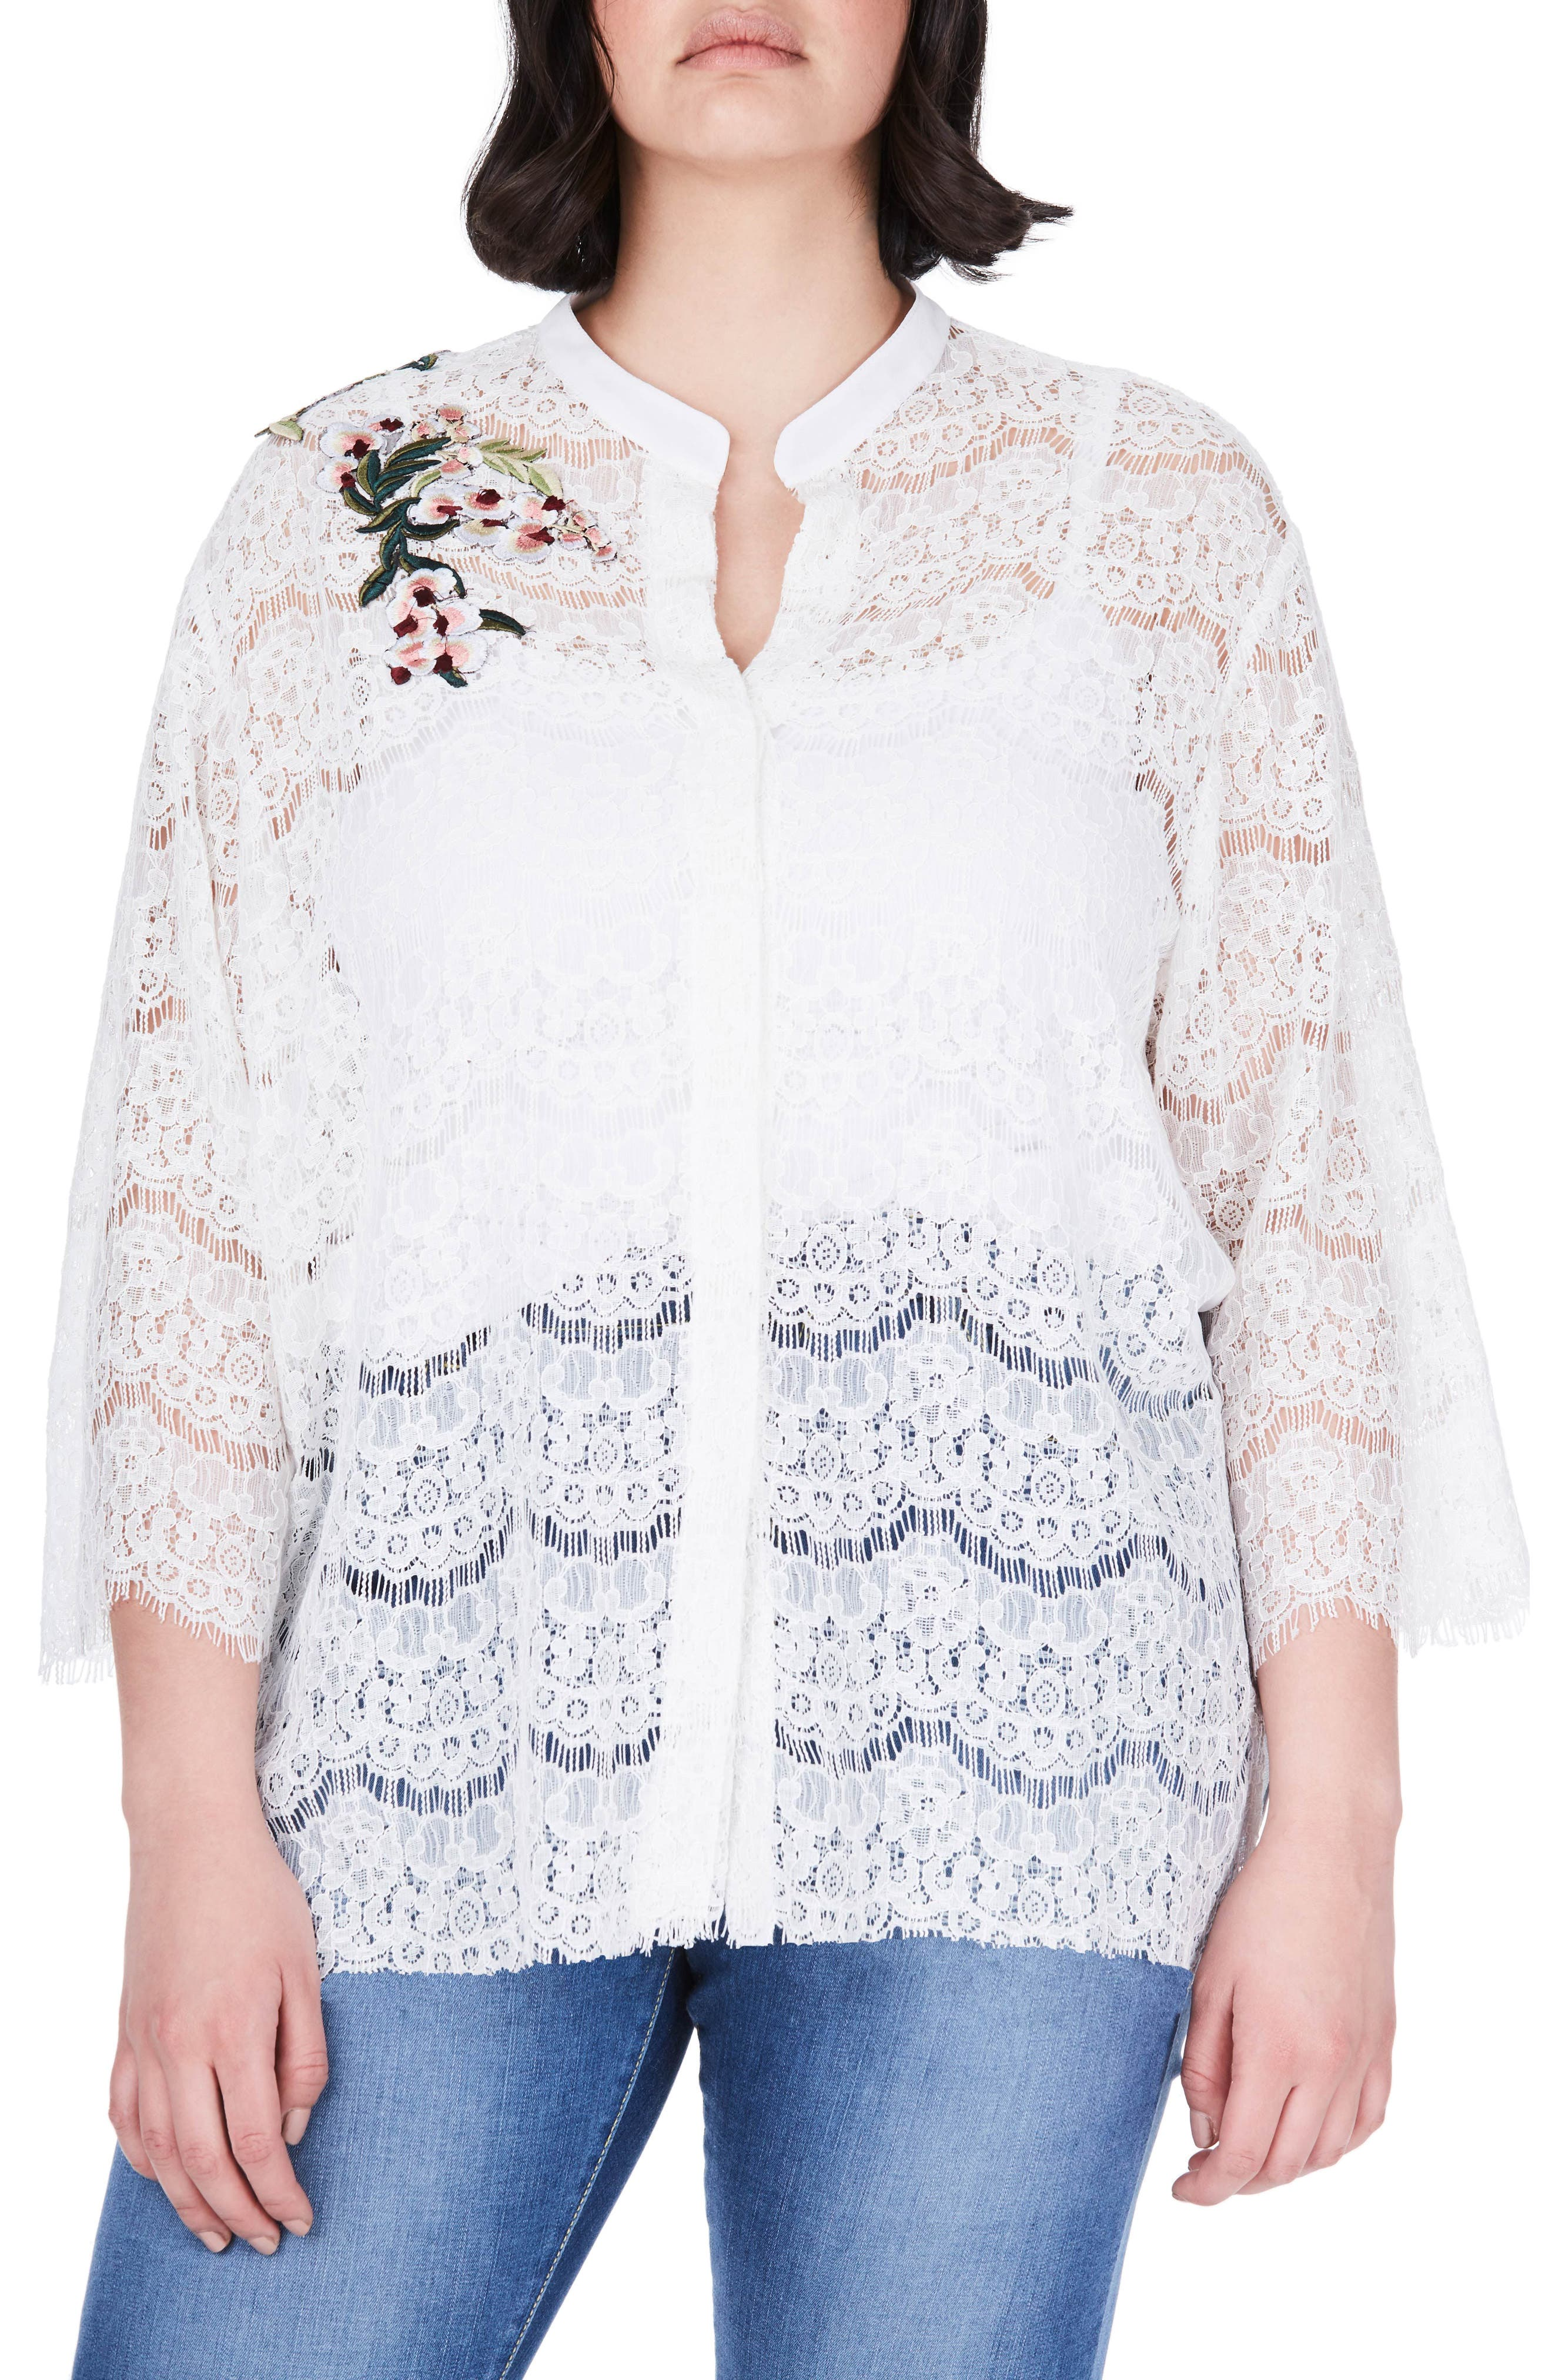 ELVI Floral Embroidered Lace Top (Plus Size)